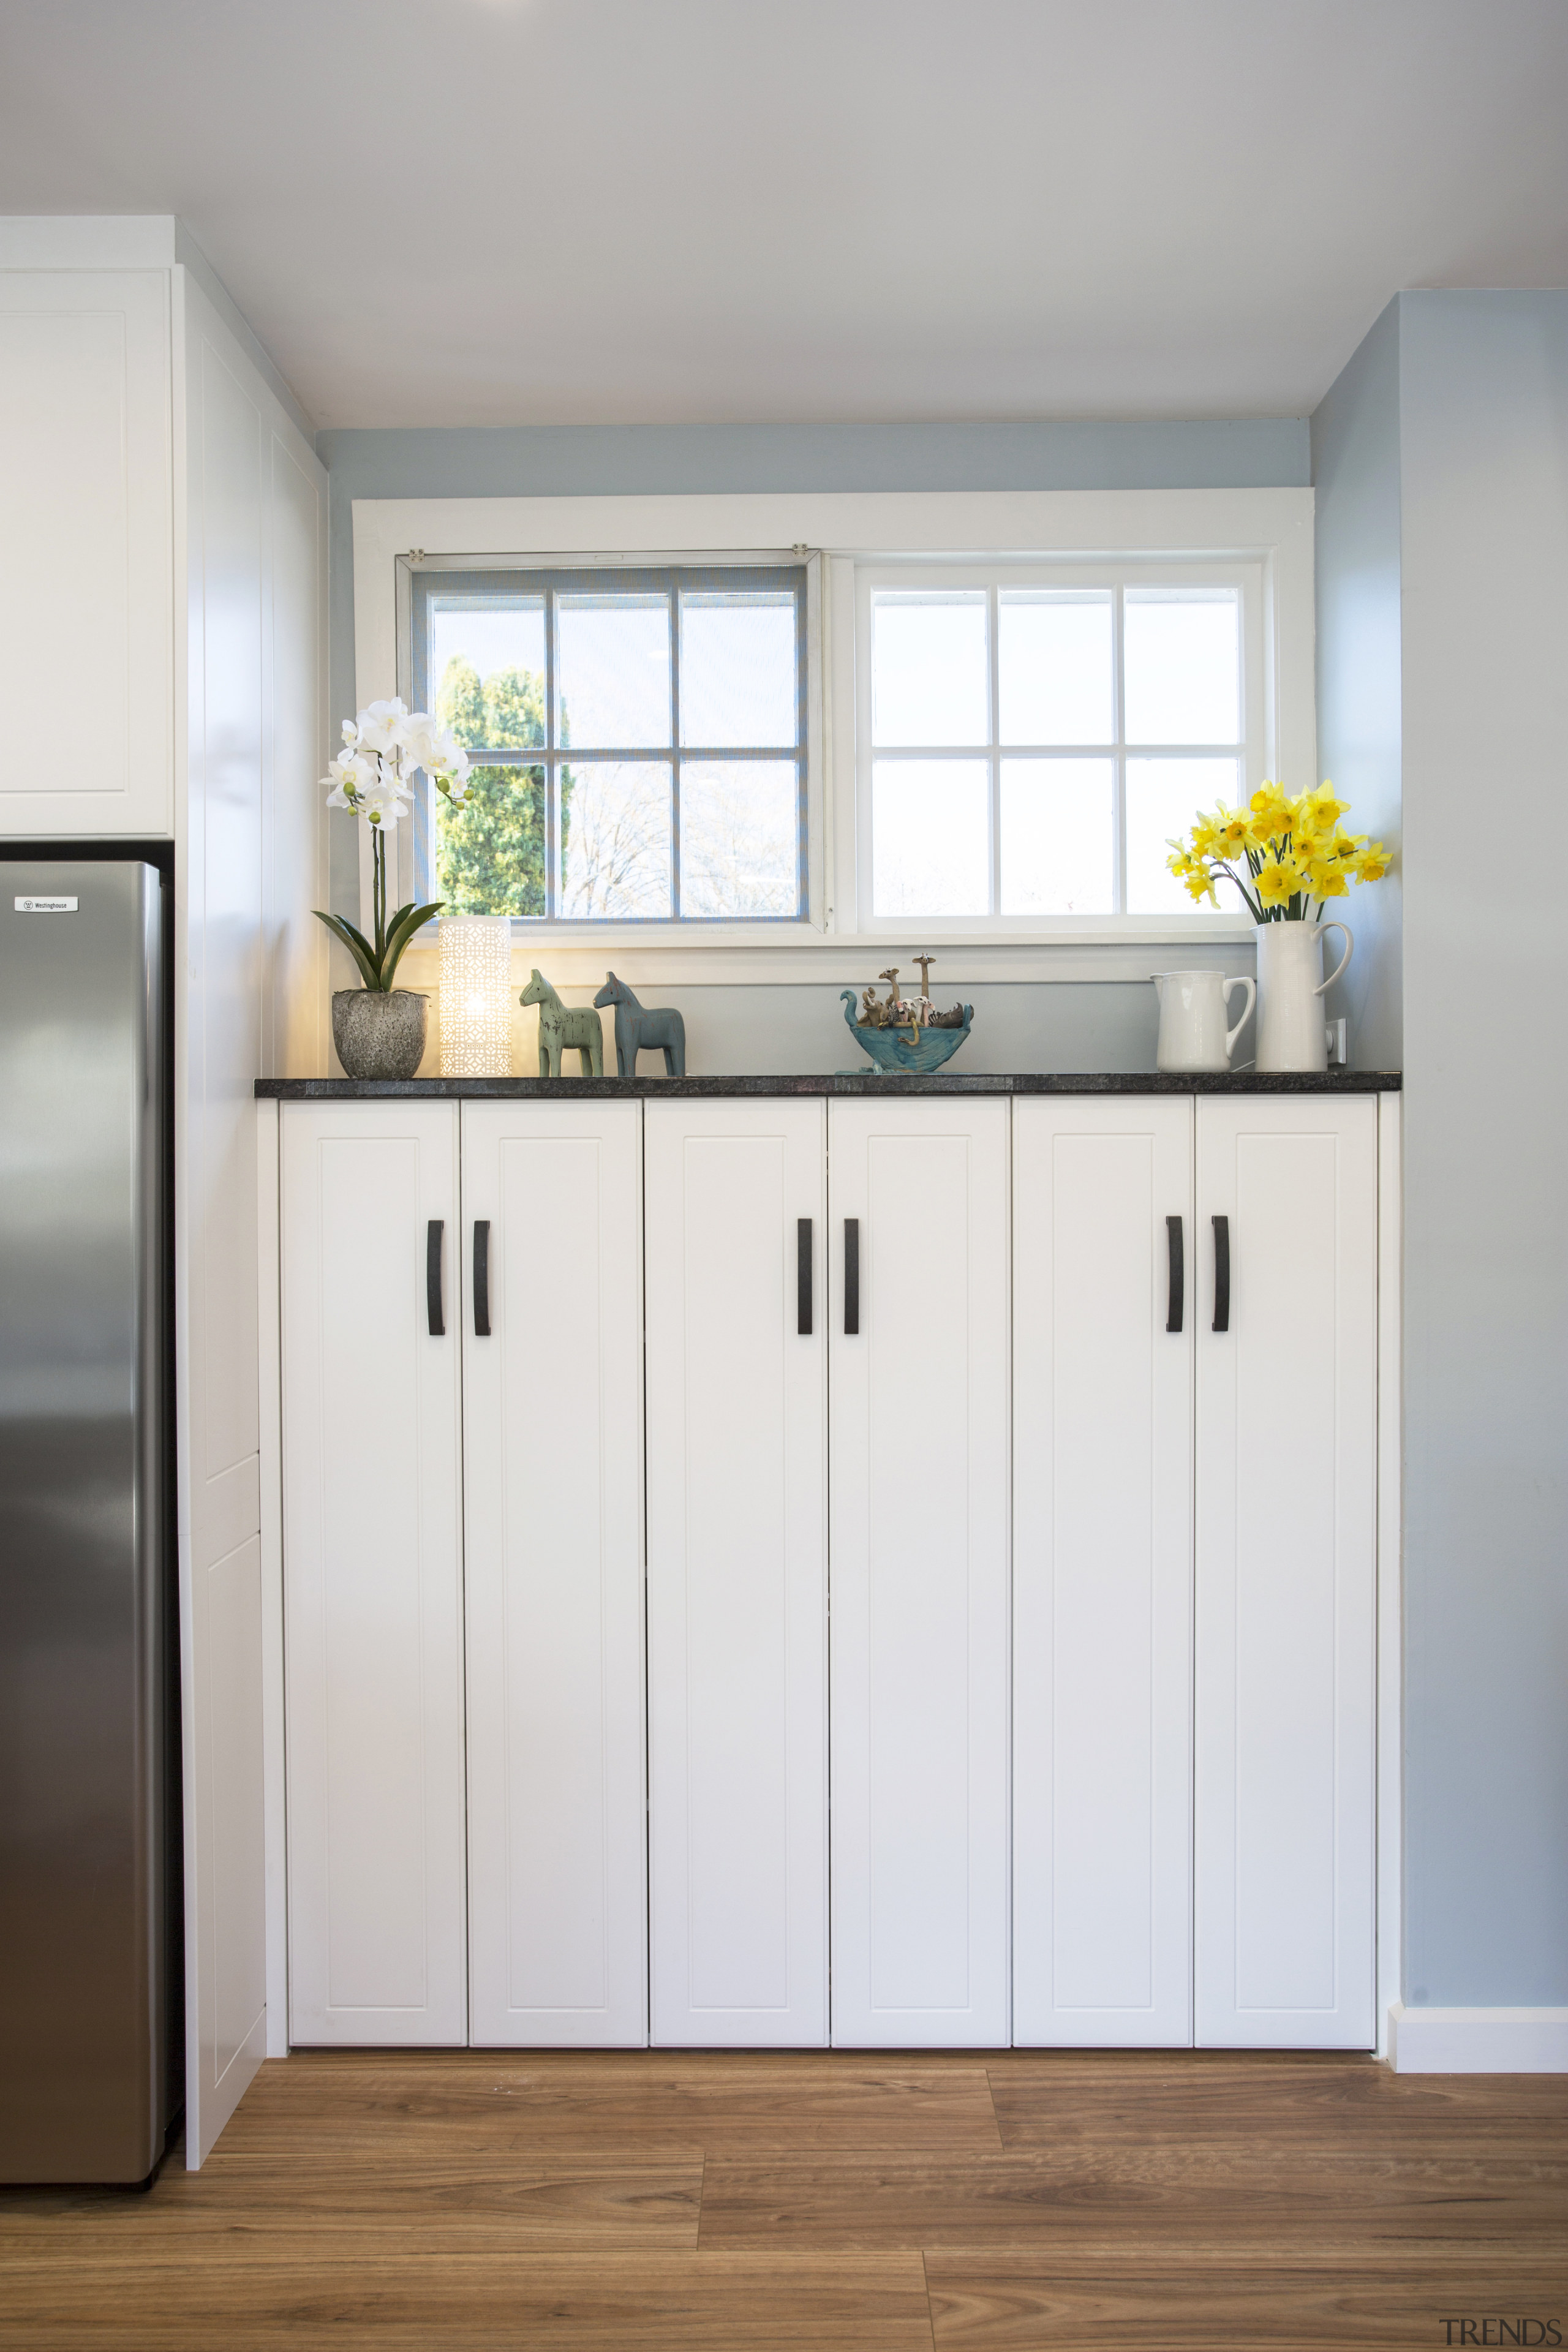 I wanted to showcase the extra high window cabinetry, floor, interior design, kitchen, product, room, white, gray